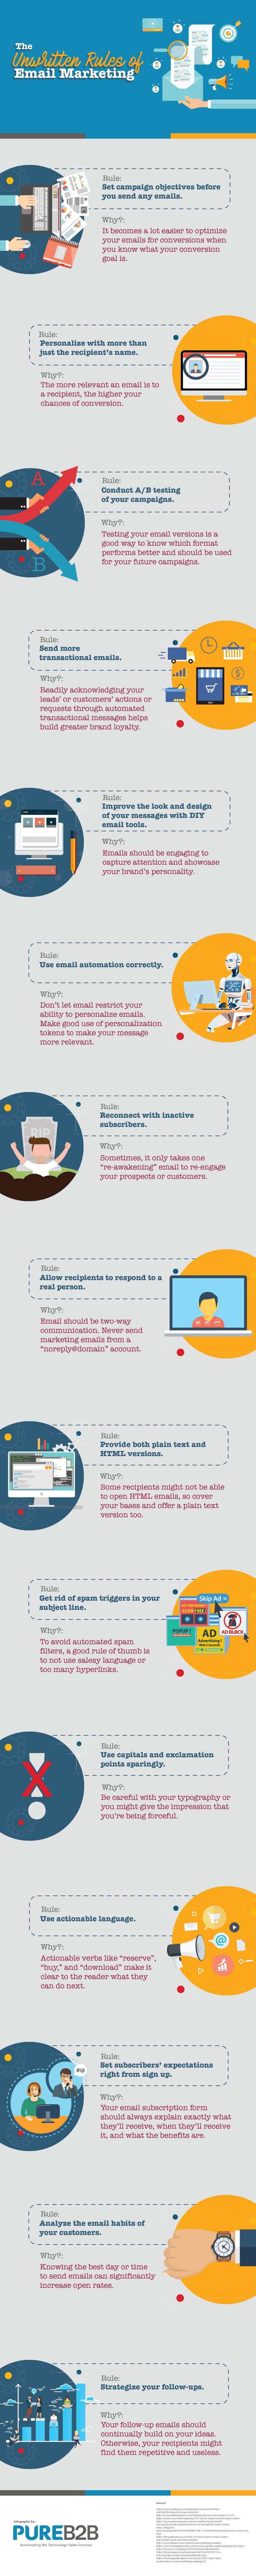 Infographic: The 15 Unwritten Rules for Email Marketing You Must Know